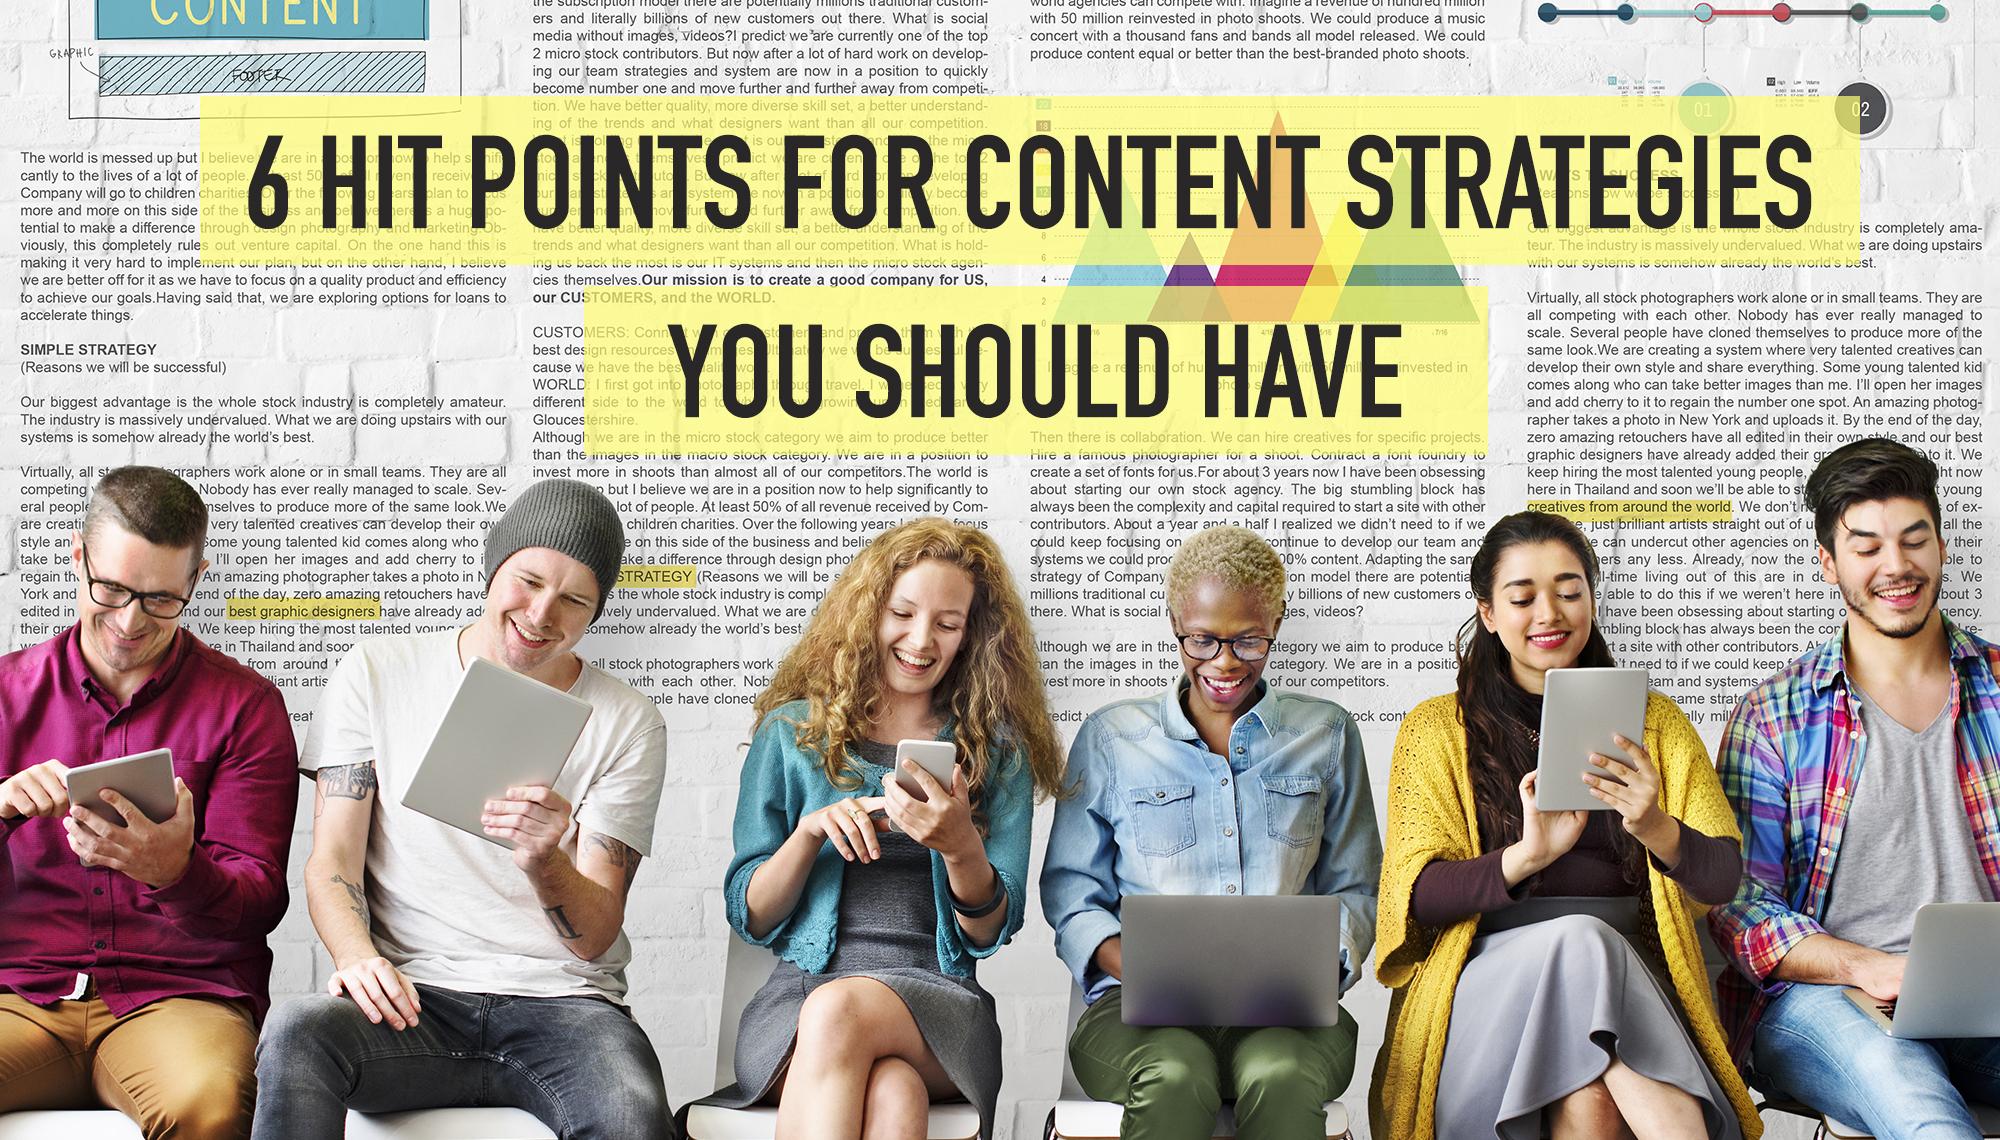 6 Hit points for content strategies